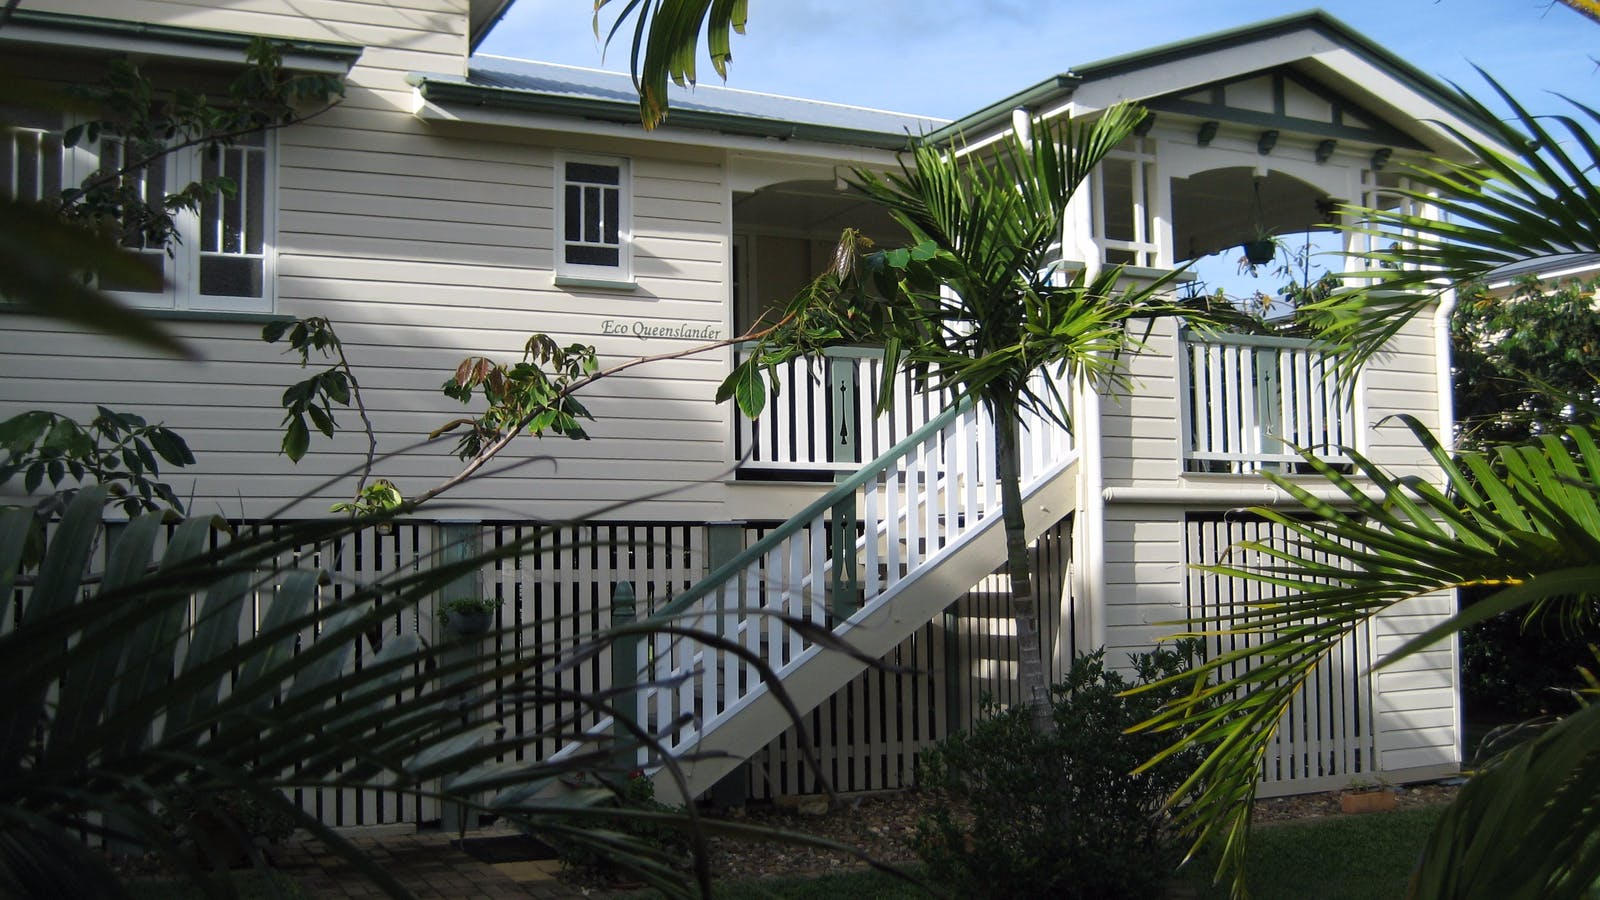 Eco Queenslander, Street view